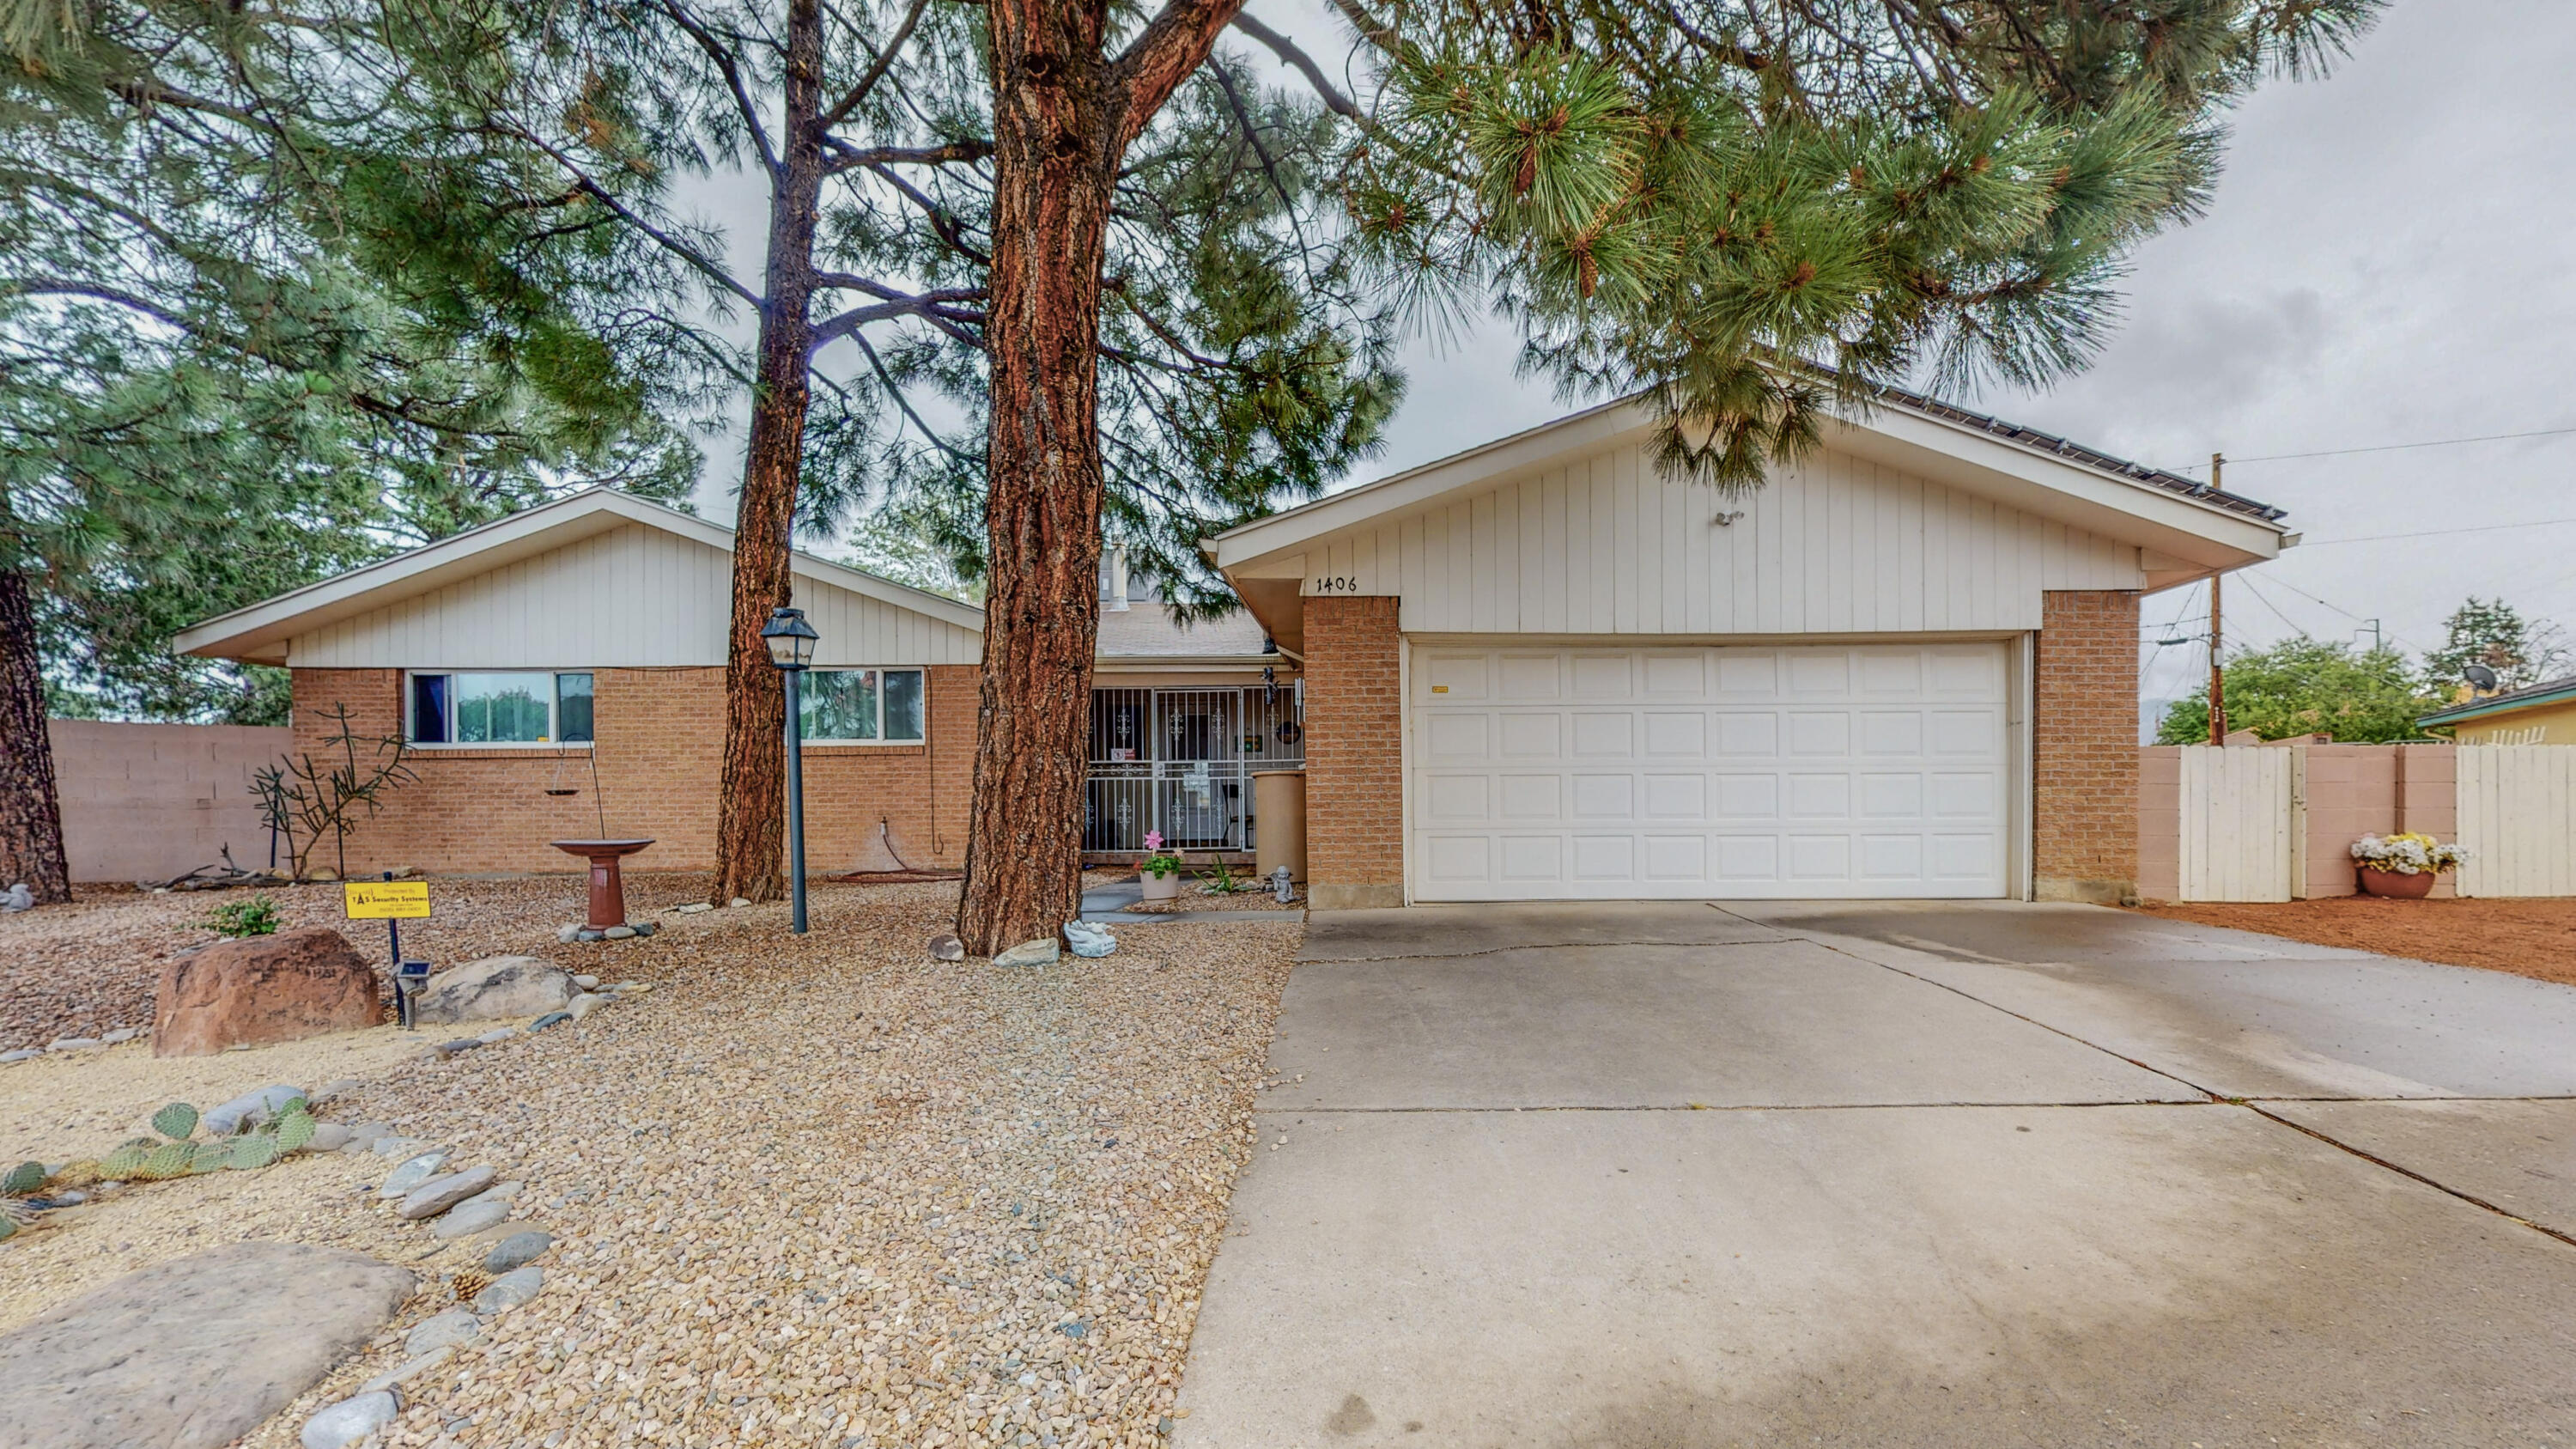 Great NE location in Snowheights neighborhood, close to Uptown, stores, freeway and restaurants. Great floorplan, with 1974 Sq. Ft, 3 Bedrooms, 1 Full Bath, 1/2 Bath and a powder room. Kitchen has been remodeled within the last 5 years and opens to Great Room with a wood burning fireplace. Private backyard features a covered patio and a gated play structure with plenty of room to entertain.  Situated on more than 1/4 acre in a quiet cul-de-sac with HUGE backyard with side access for RV/boat storage with a clean outs to dump your trailer. Backyard storage is on a permanent foundation. 5 rain barrels surround the home to water the beautiful fruit trees and plants. Come take a look at this Beauty, this might be the home for you! Solar panel are owned!